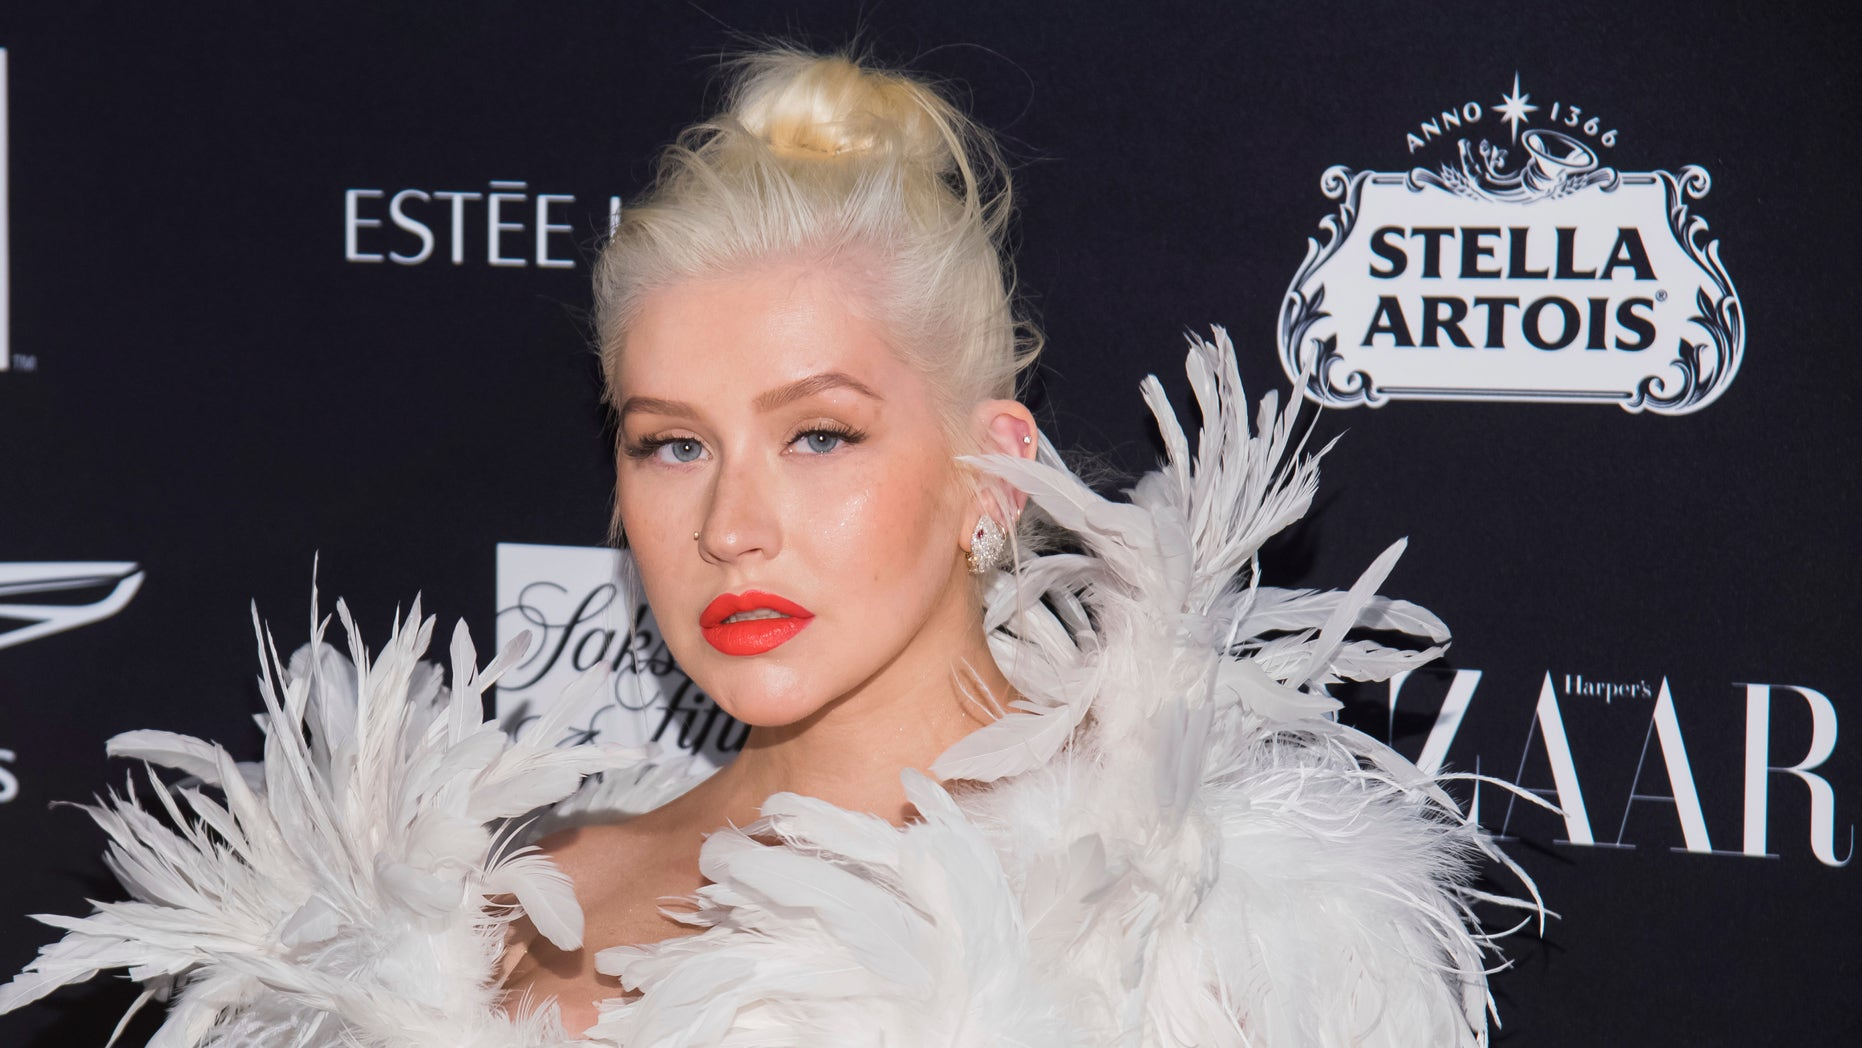 Christina Aguilera Announces Las Vegas Residency Plans